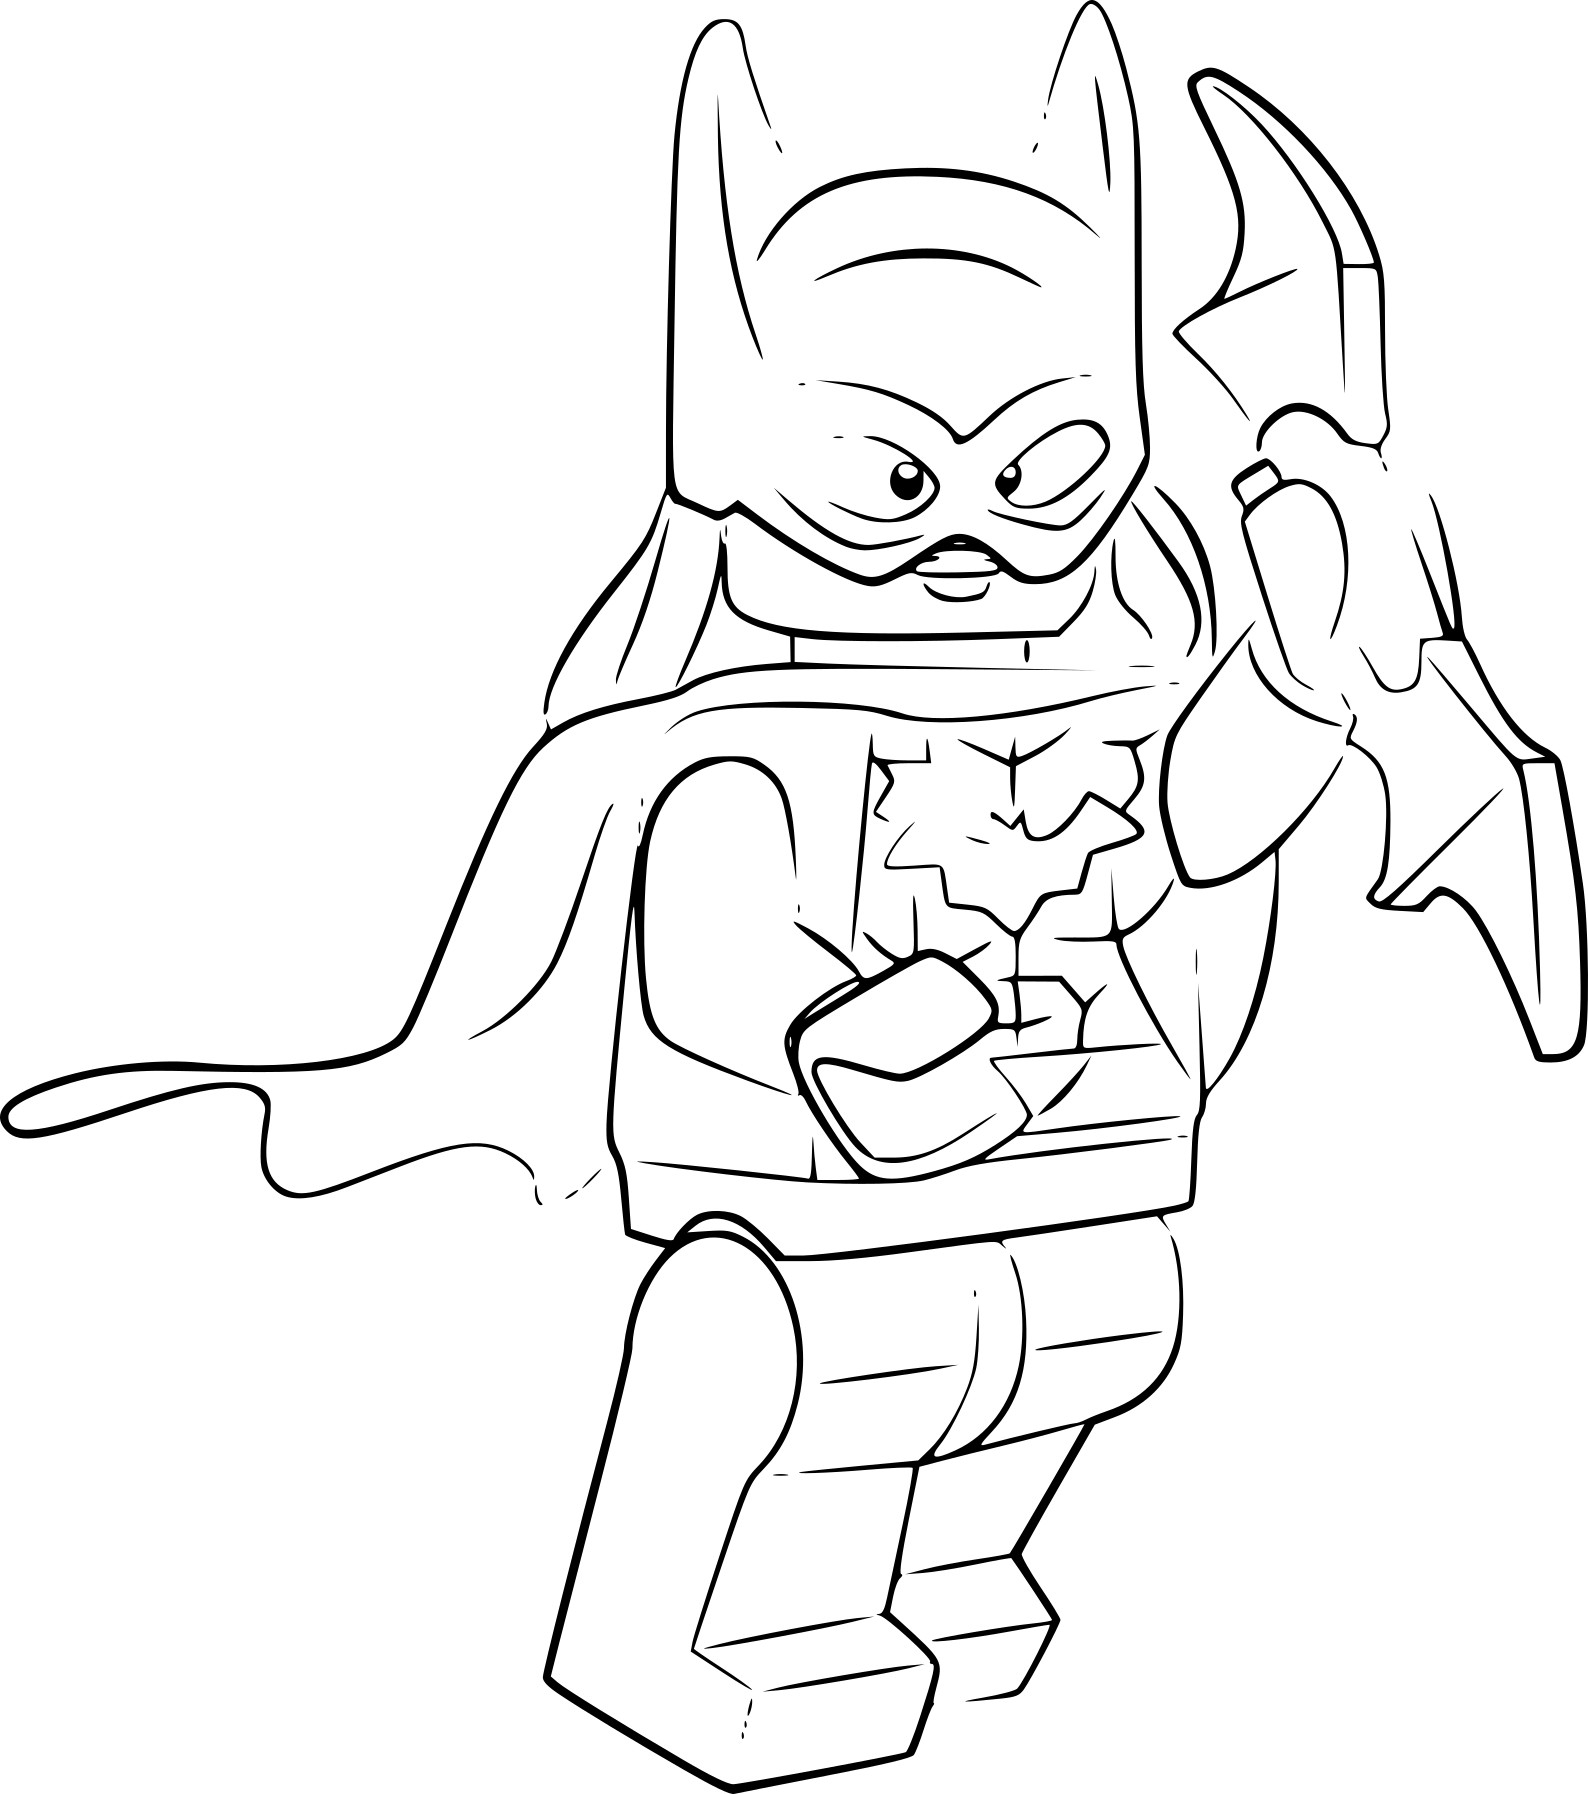 lego iron man coloring pages - coloriage lego batgirl